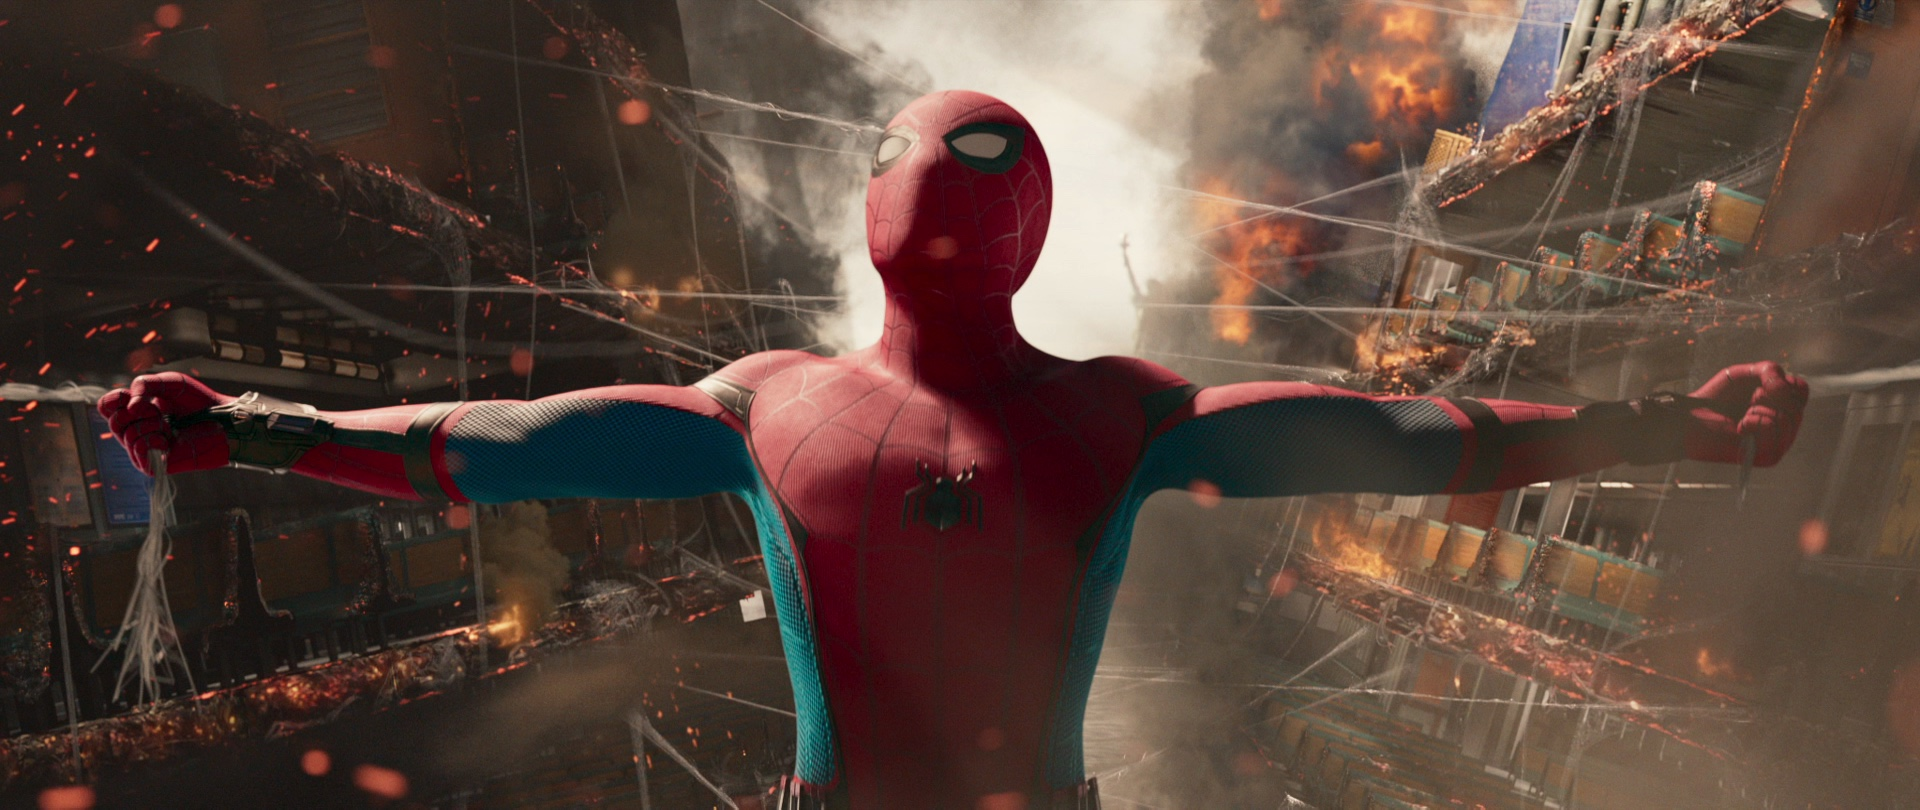 spider-man-homecoming-trailer-2-hd-screencaps-3